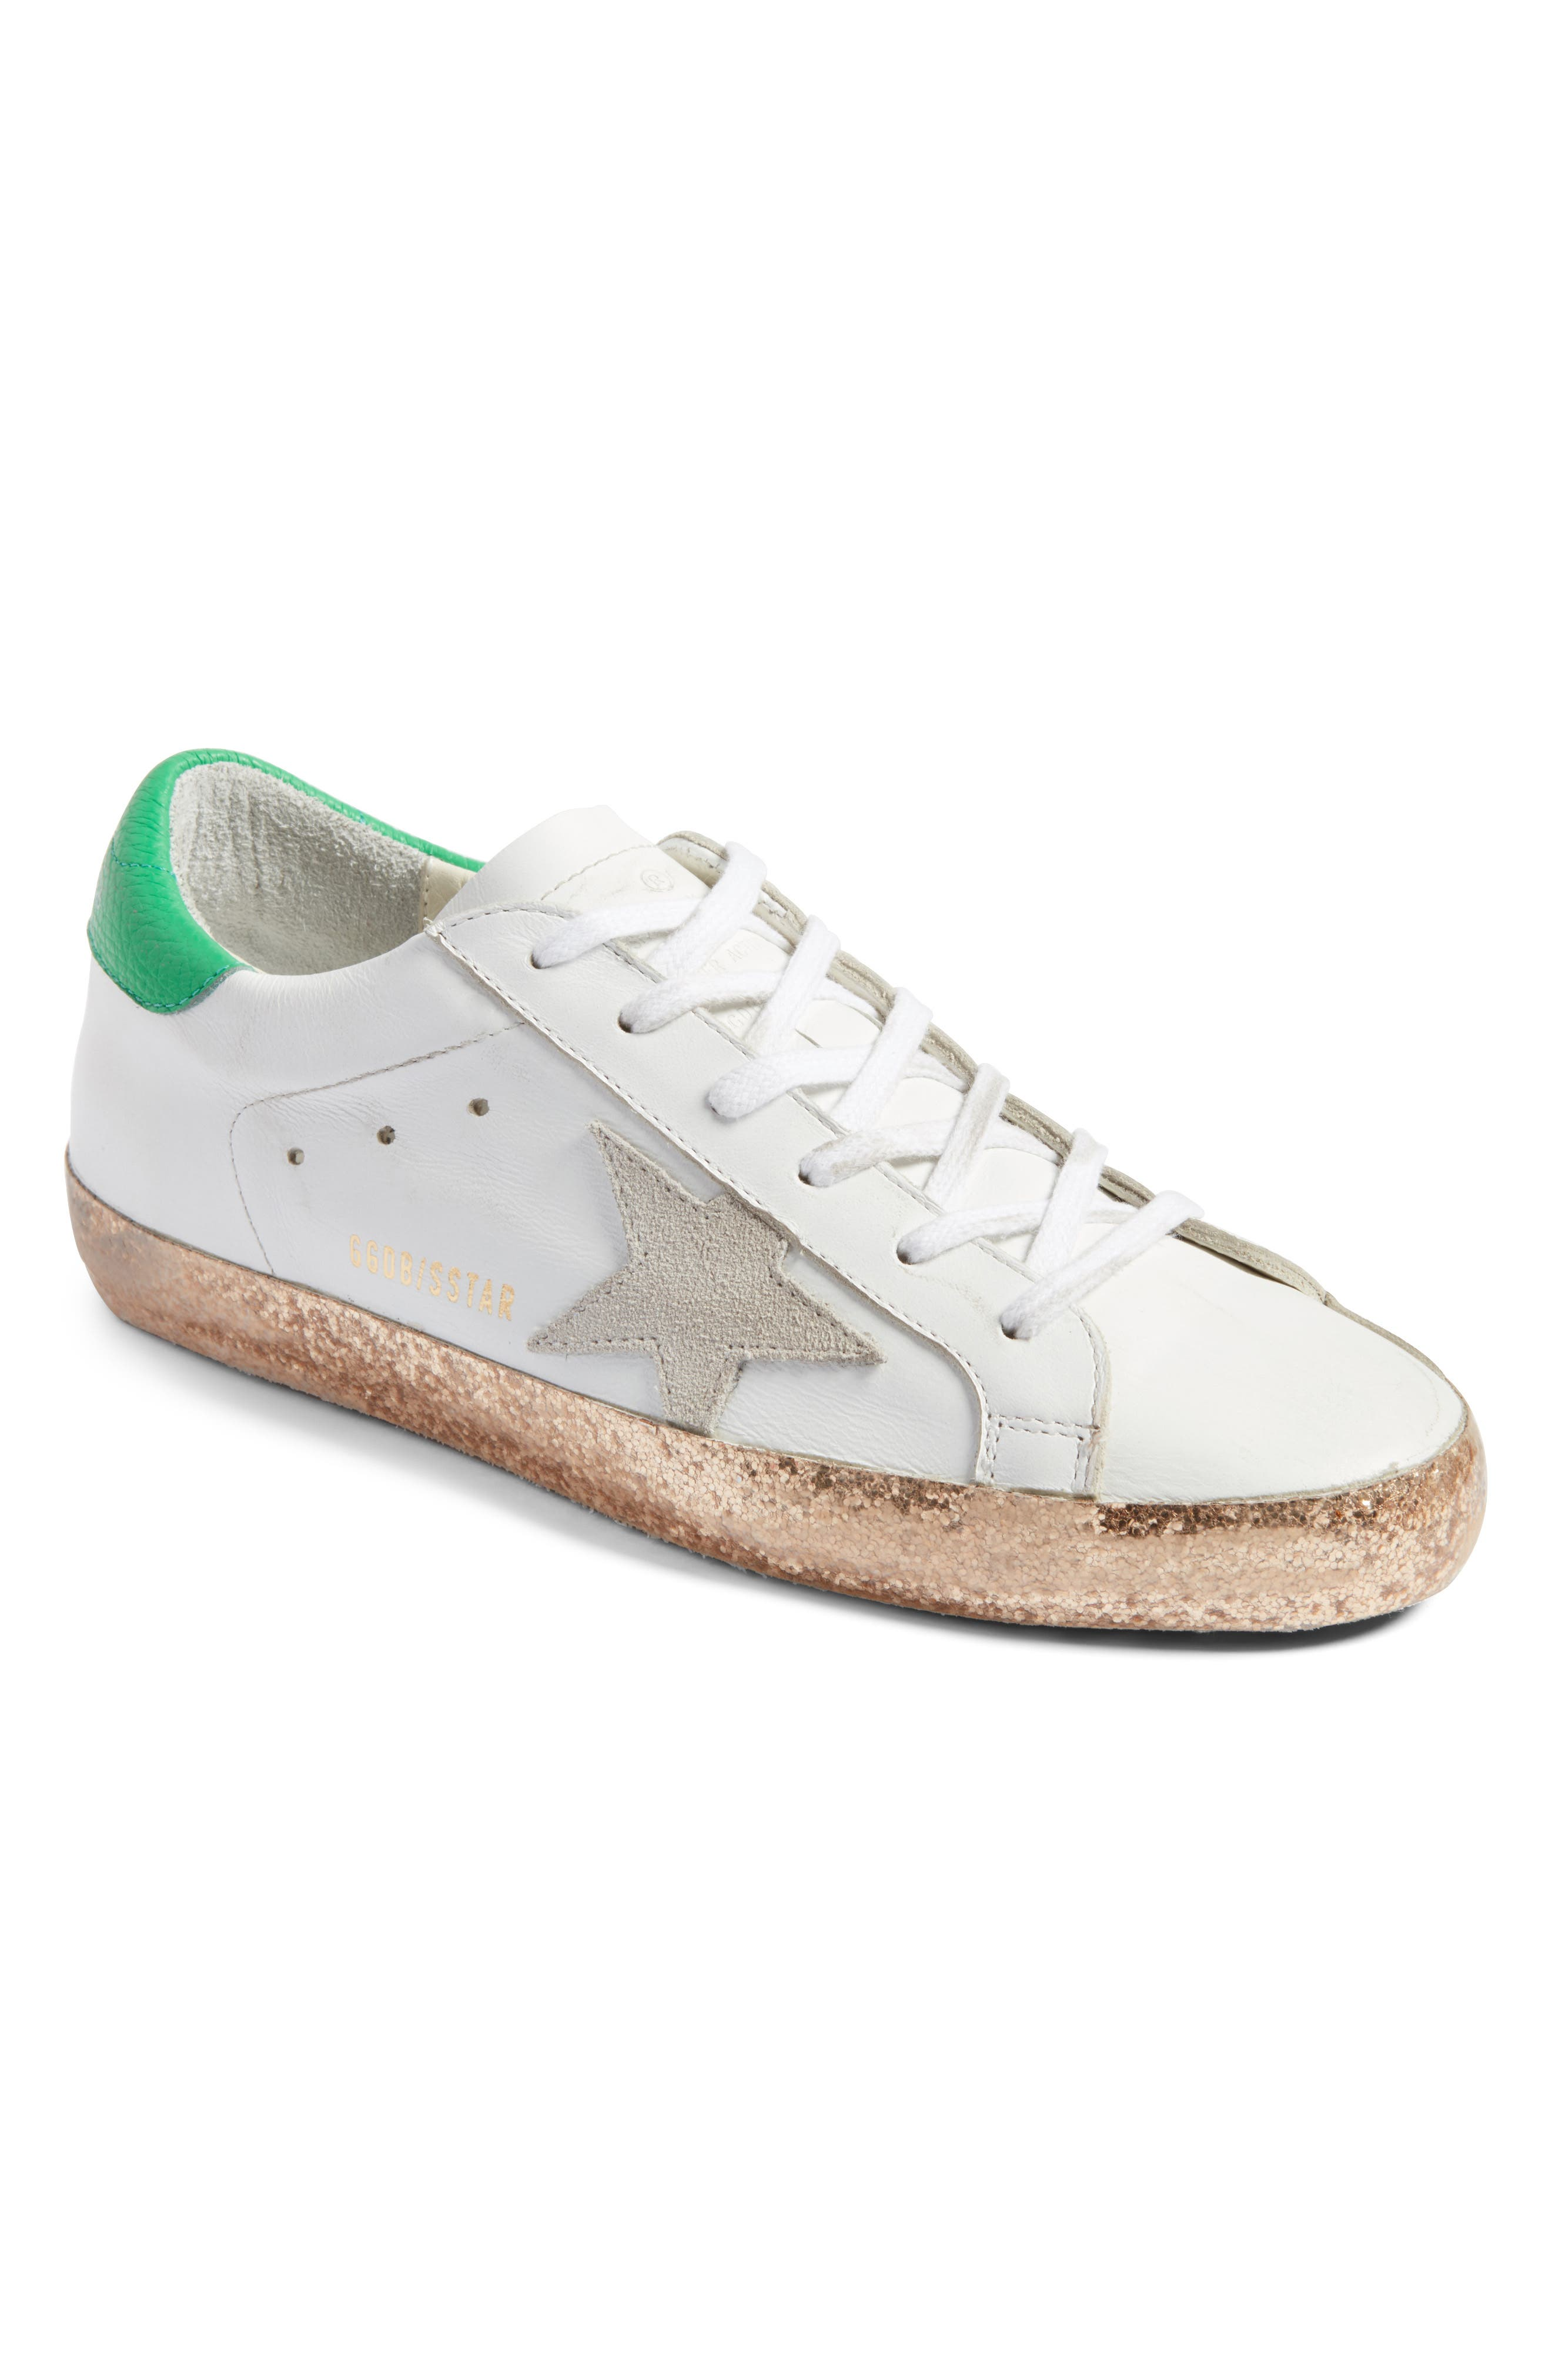 Superstar Low Top Sneaker,                             Main thumbnail 1, color,                             White Leather/ Gold